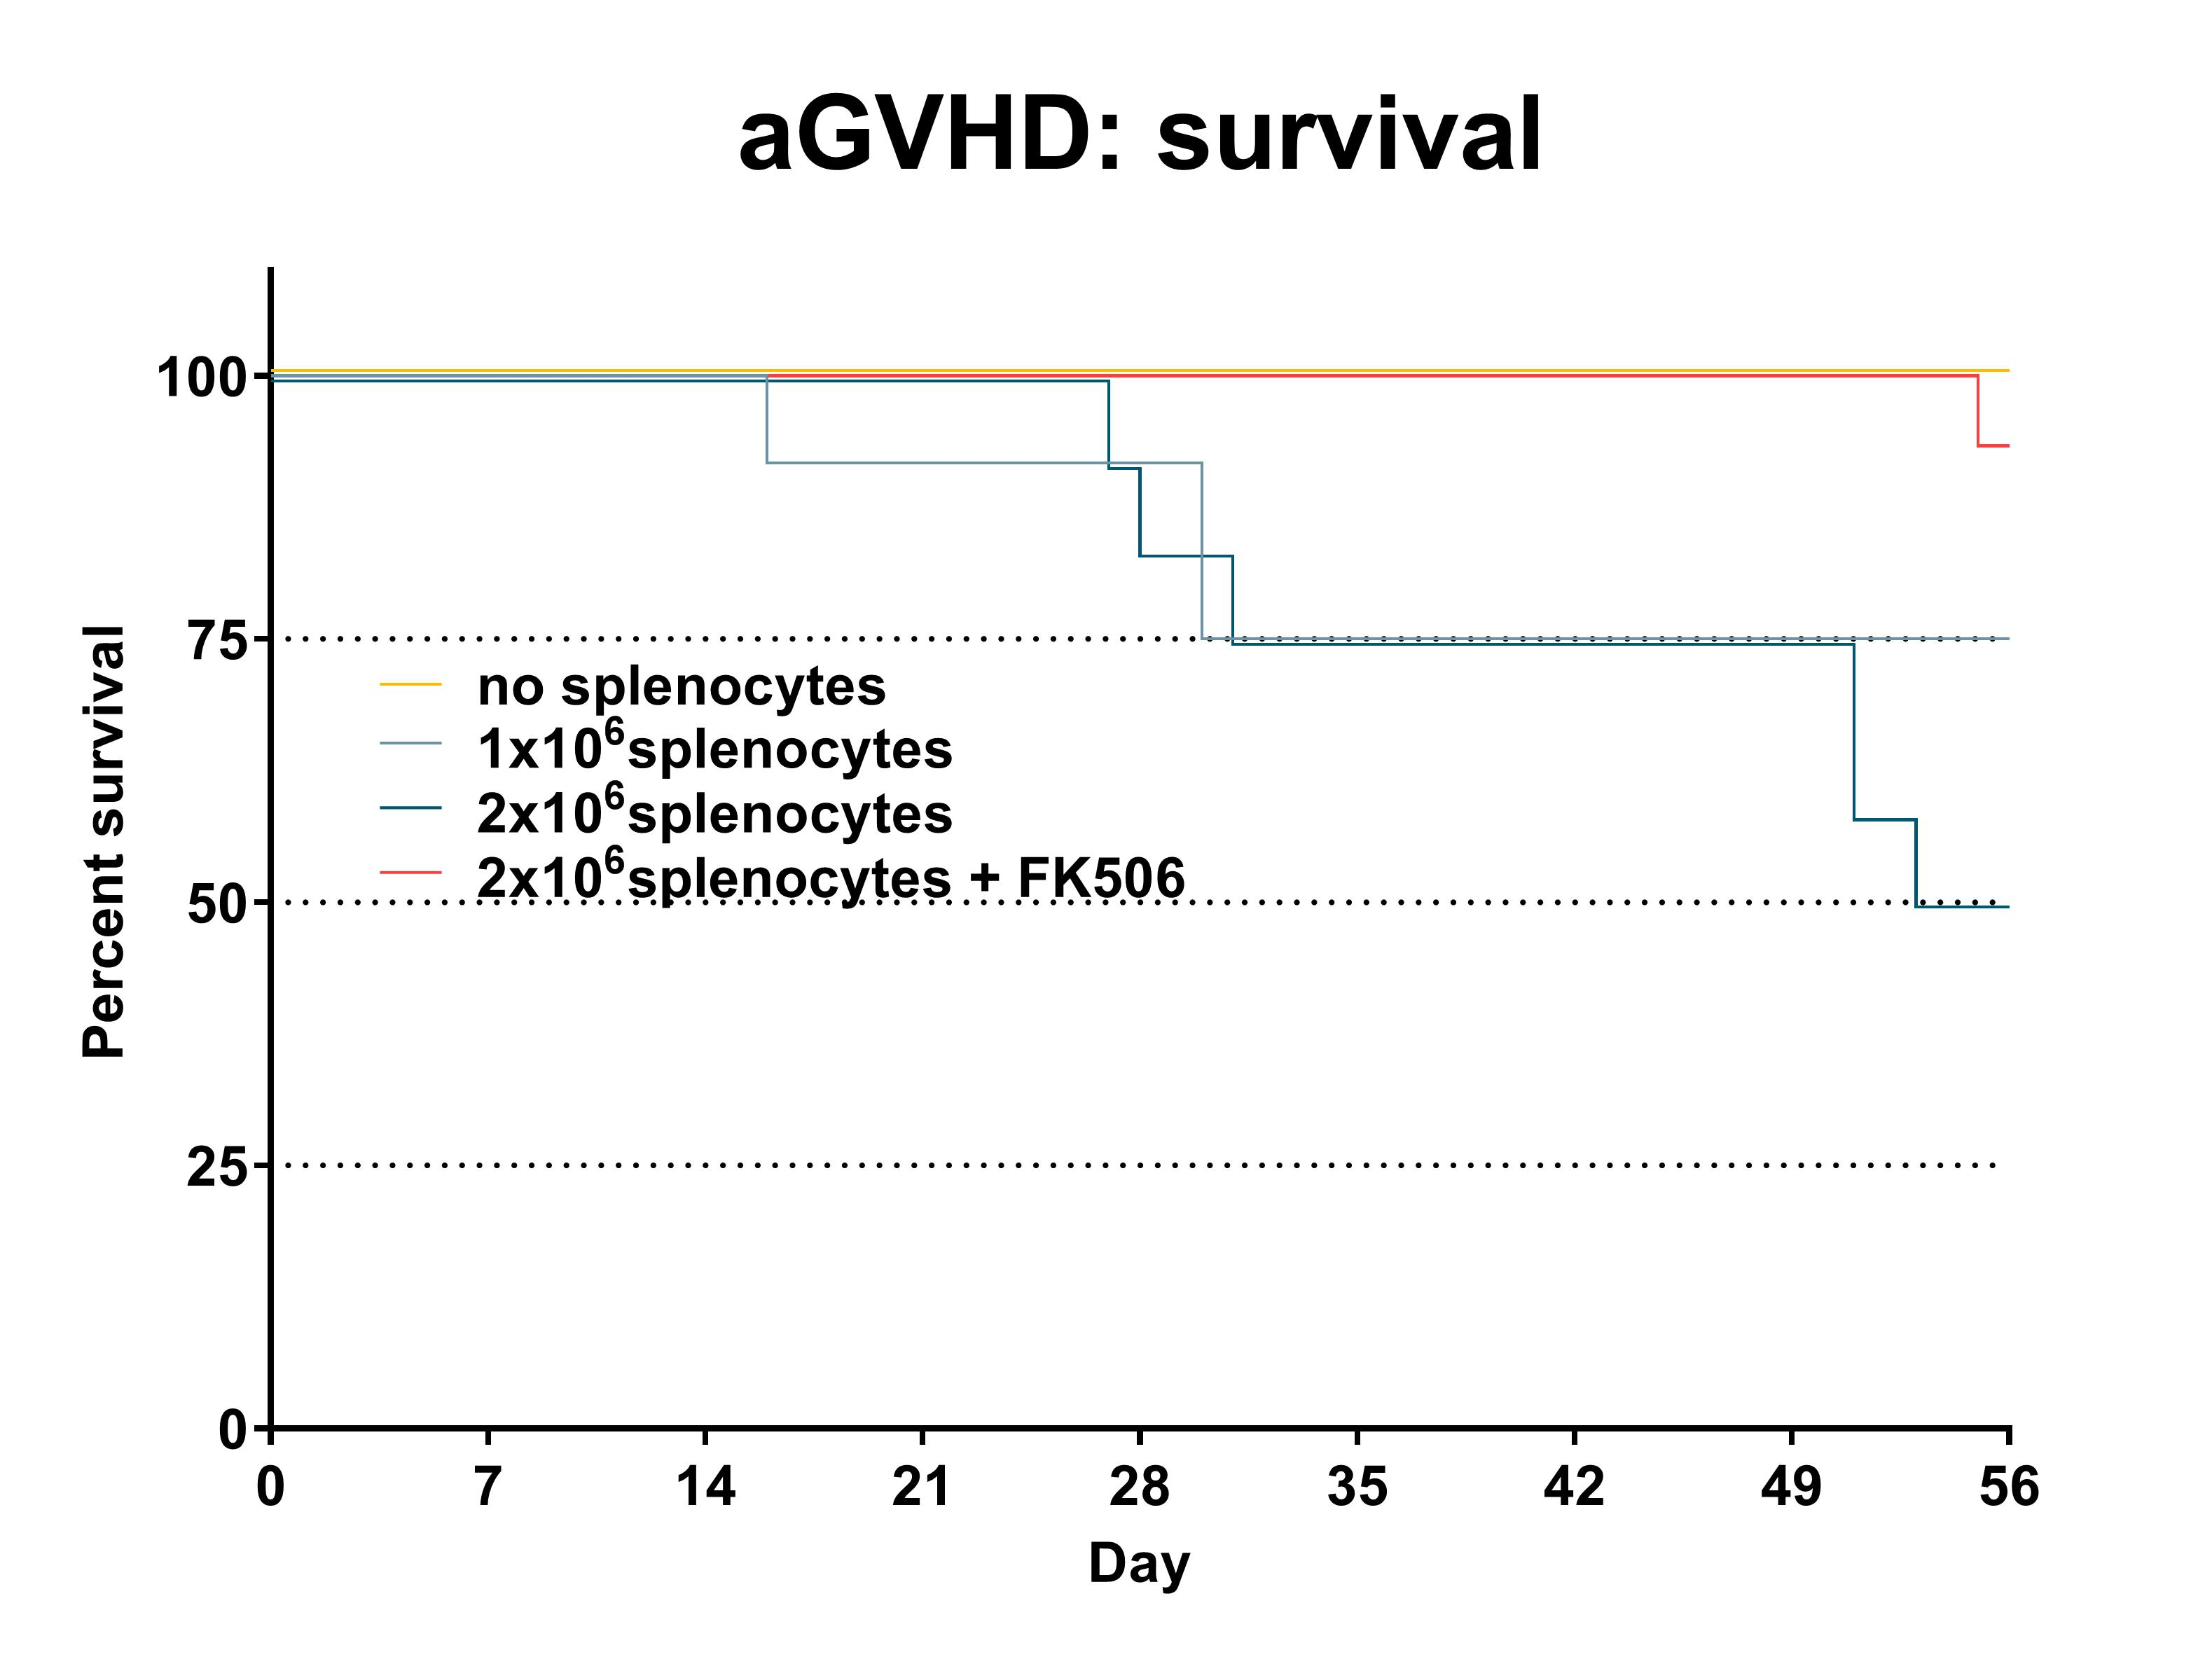 Recipient mice were pre-conditioned and transplanted with 1x107 donor-derived CD3-depleted bone marrow cells supplemented with different numbers of splenocytes (see legend) on day 0. Survival was recorded daily. Statistical evaluation by Mantel-Cox test. *: p<0.05 compared to 'no splenocytes' control; #: p<0.05 compared to '2x106 splenocytes' group. n=15 per group.